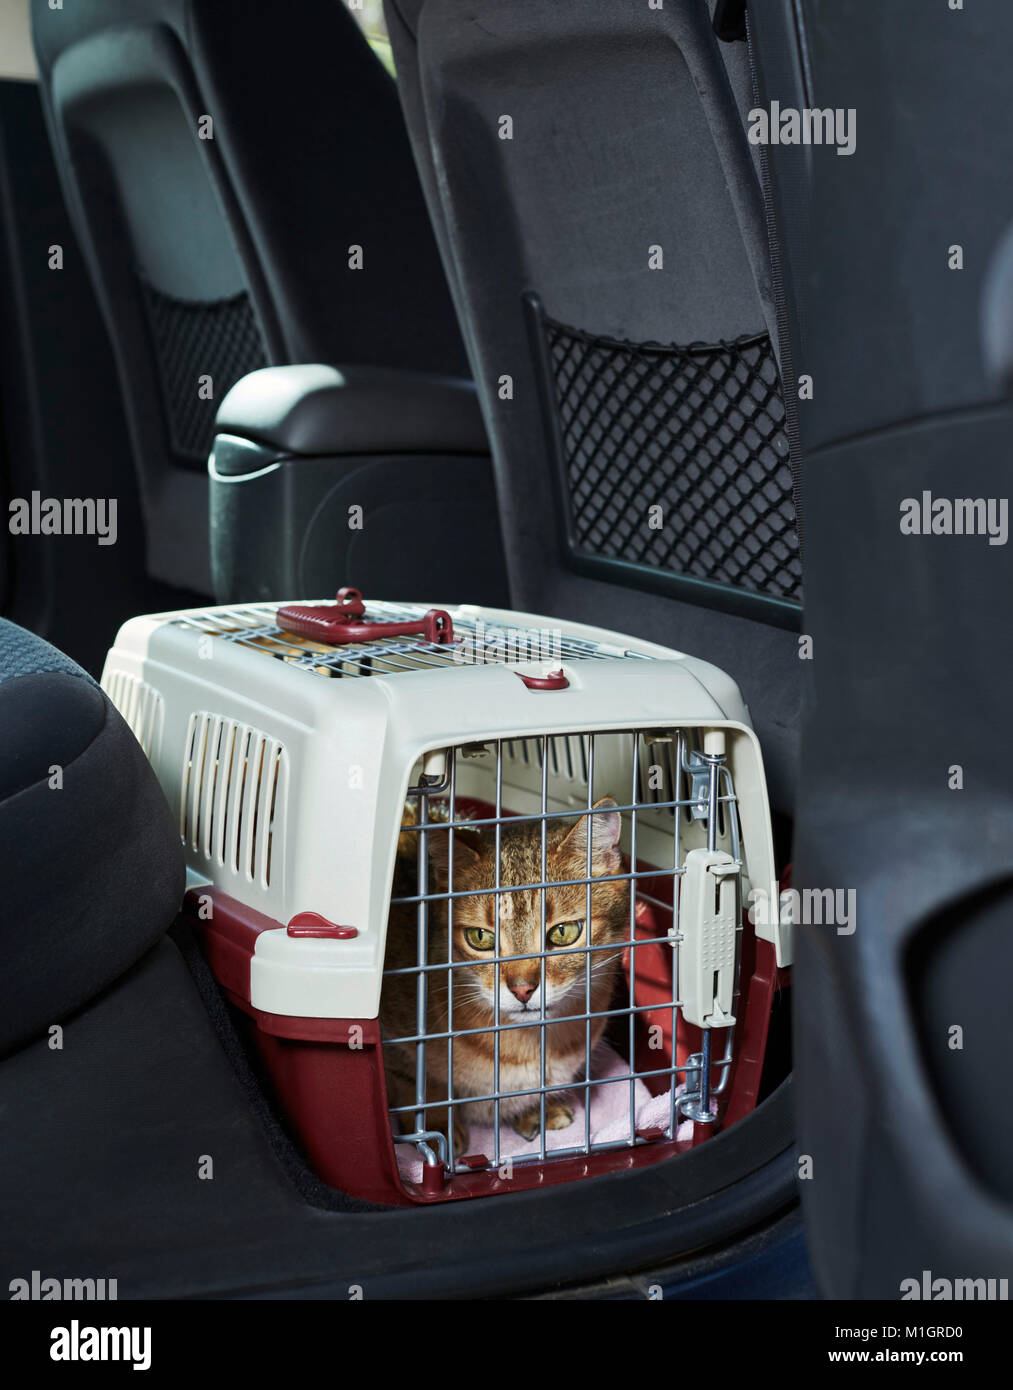 Domestic cat. Tabby adult in a pet carrier in a car. Germany - Stock Image